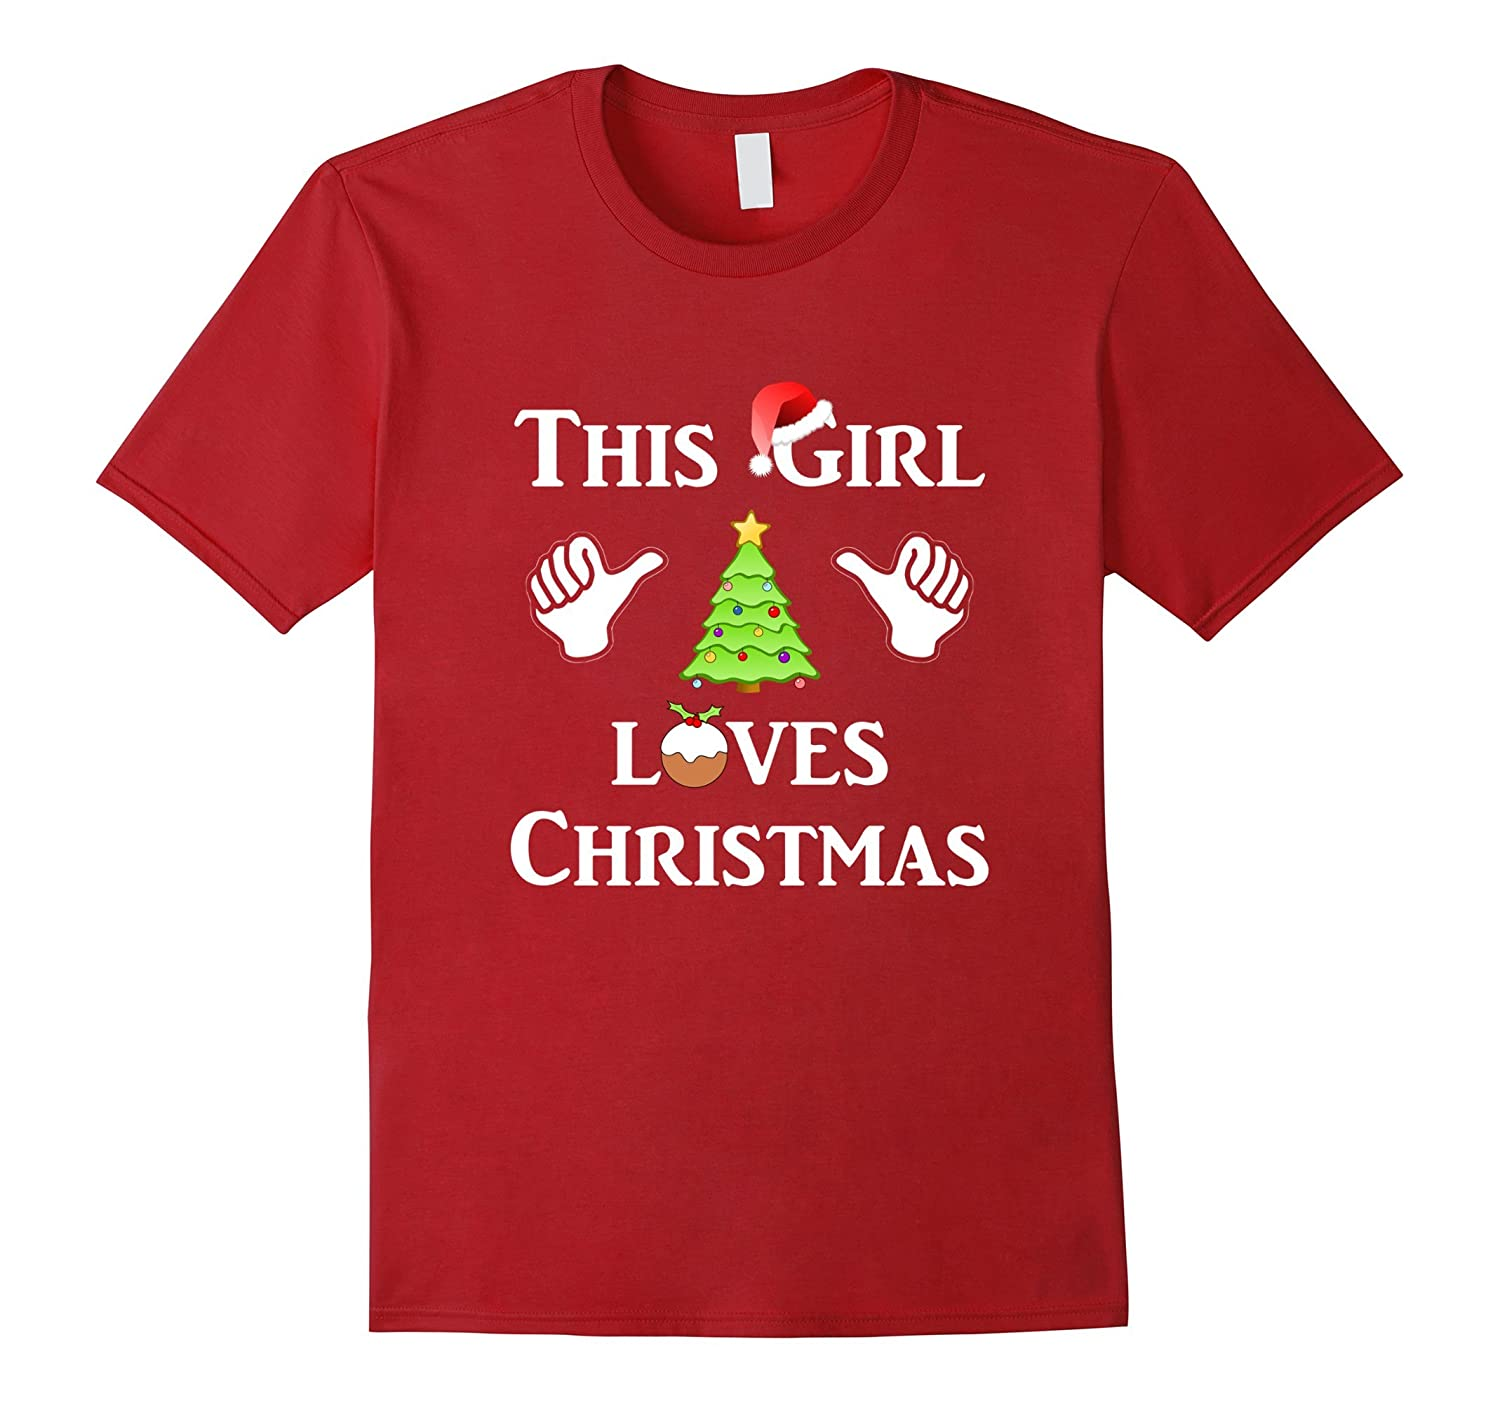 This Girl Loves Christmas T-shirt funny xmas humor tshirt-FL